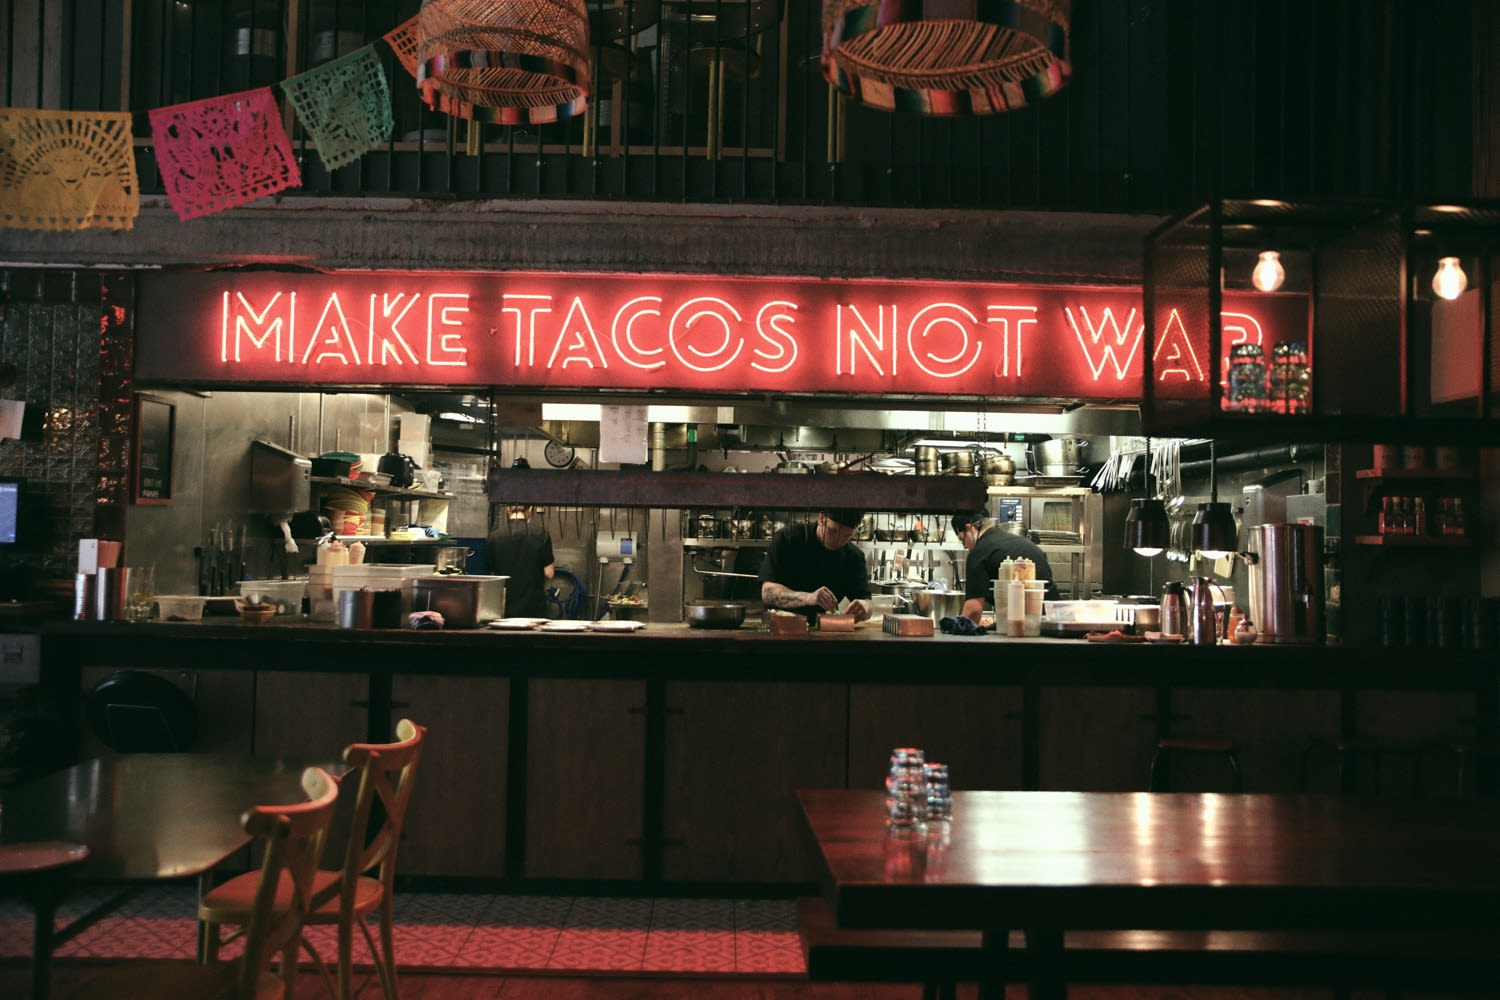 Interior of Tacos & Tequila bar/restaurant with neon 'Make Tacos Not War' sign above kitchen - Axel Arigato City Guide Gothenburg